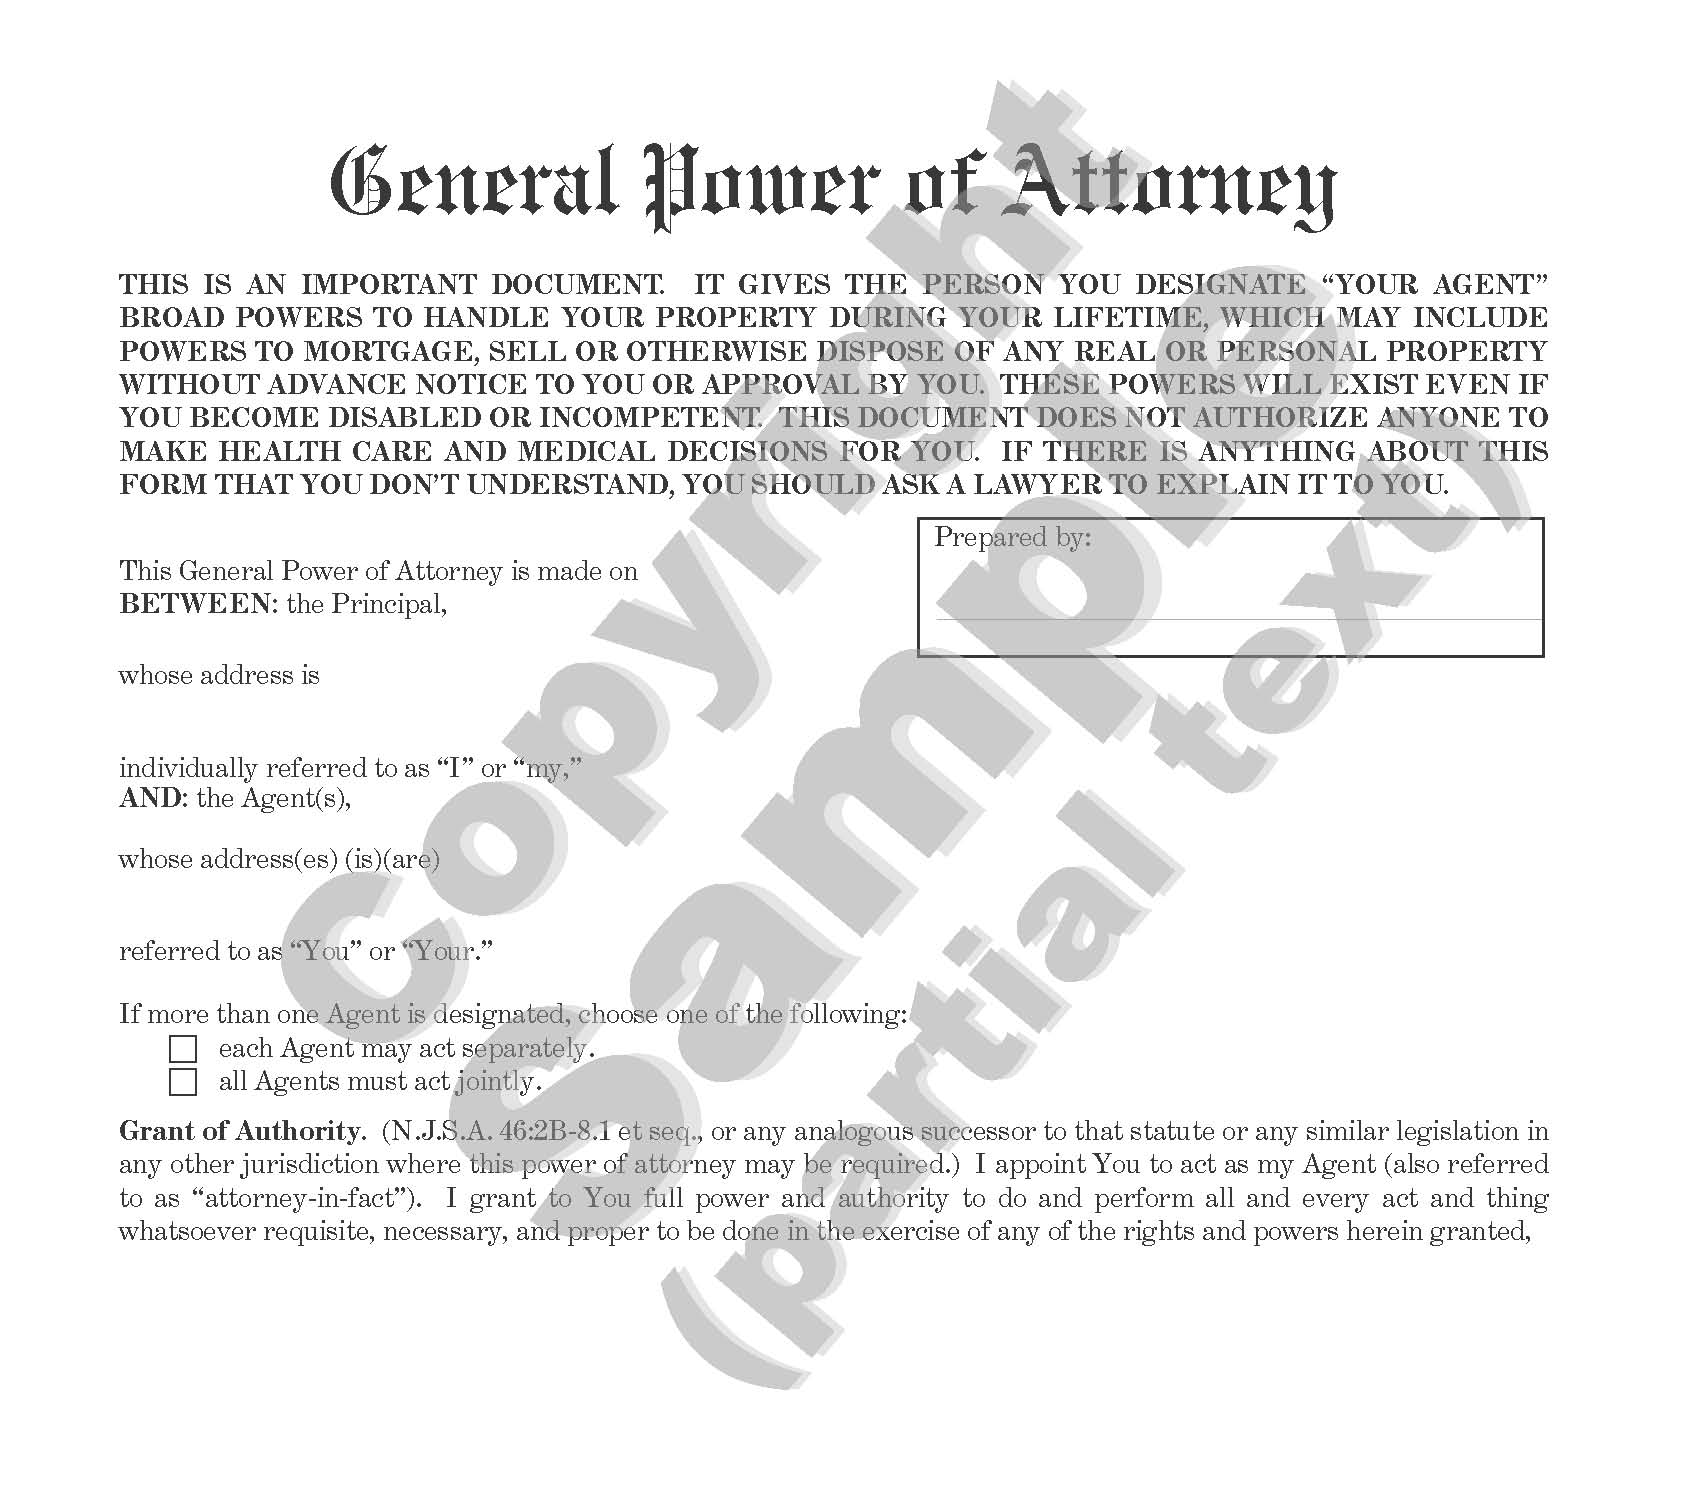 General Power of Attorney - New Jersey